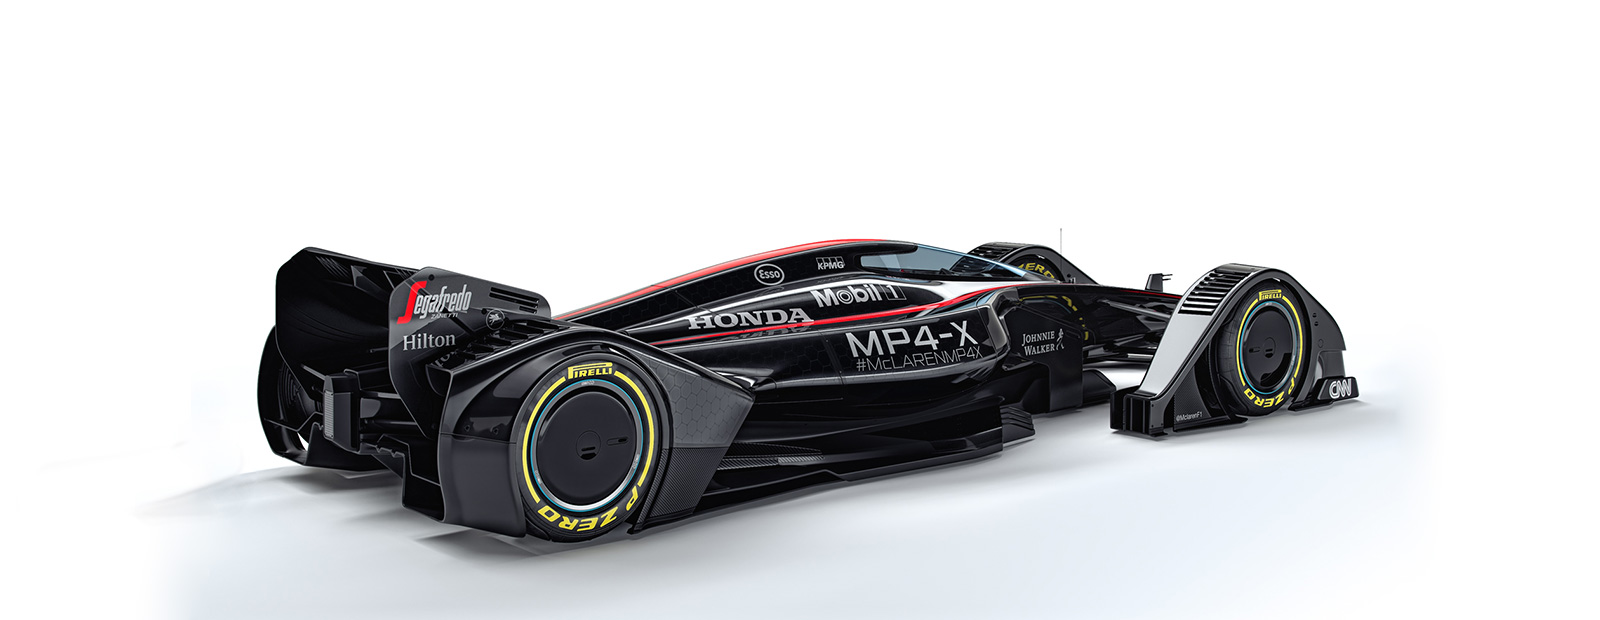 McLaren MP4-X Side View